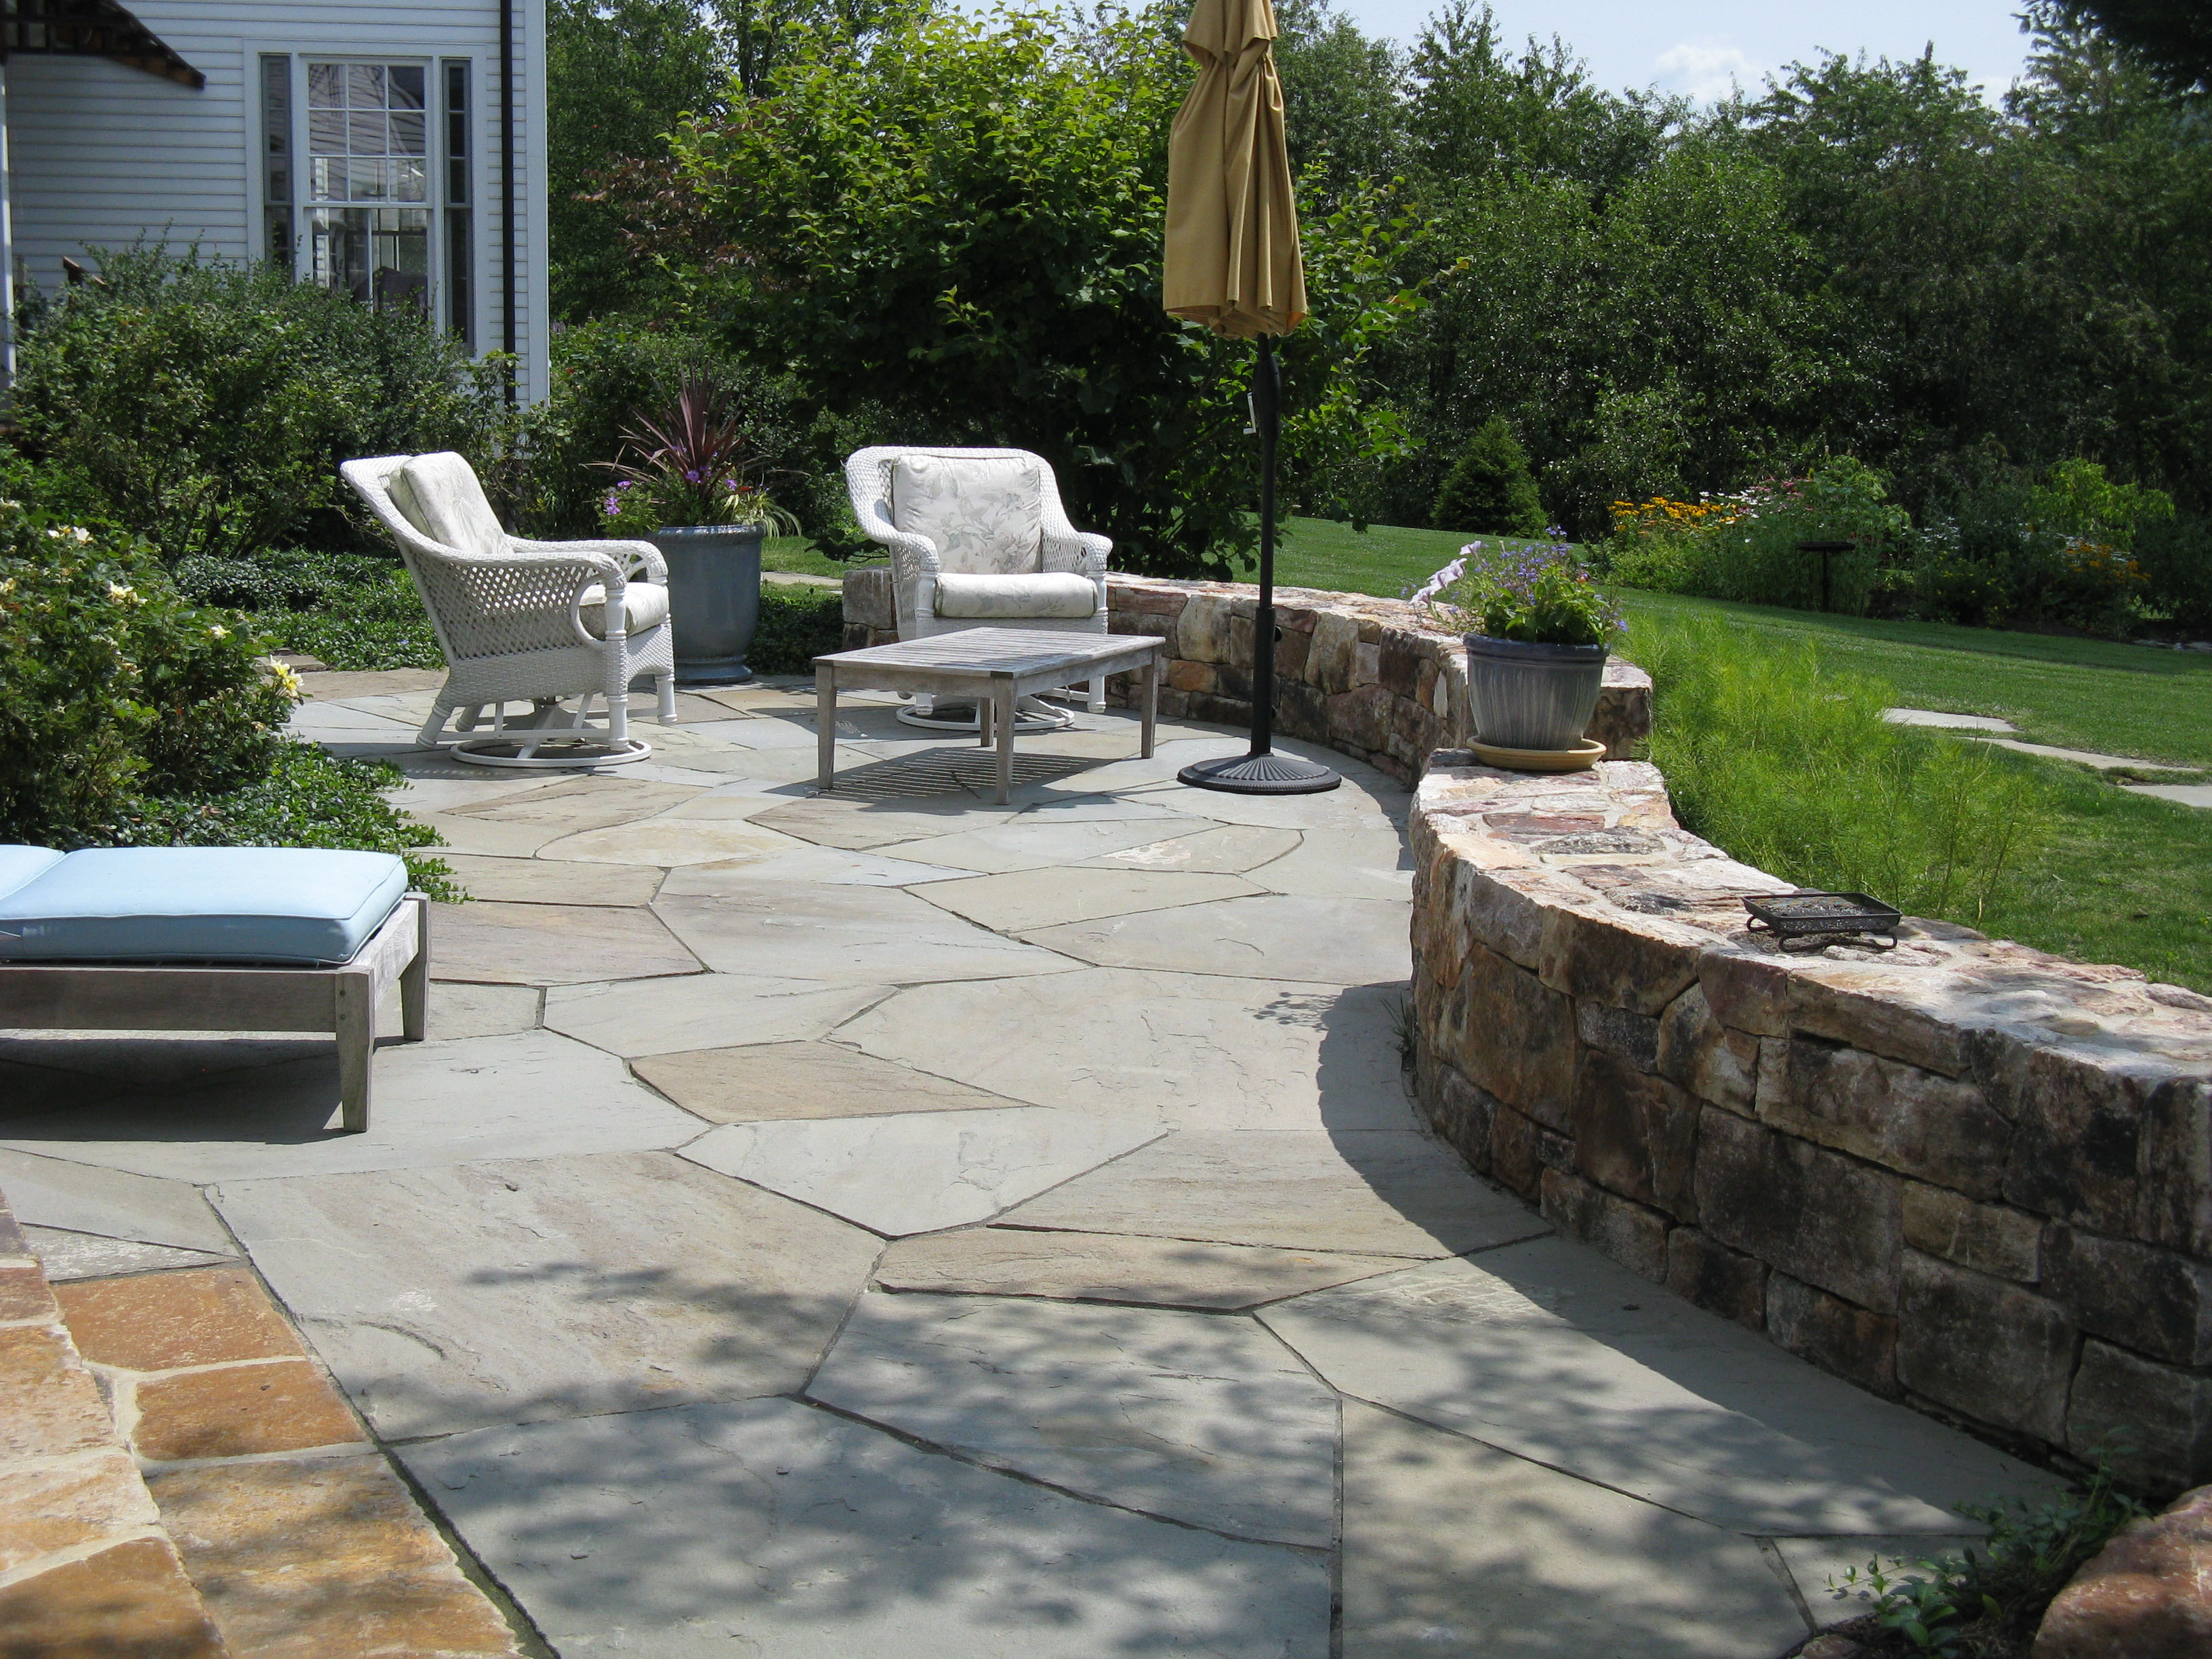 landscape design services for home in alburtis pa